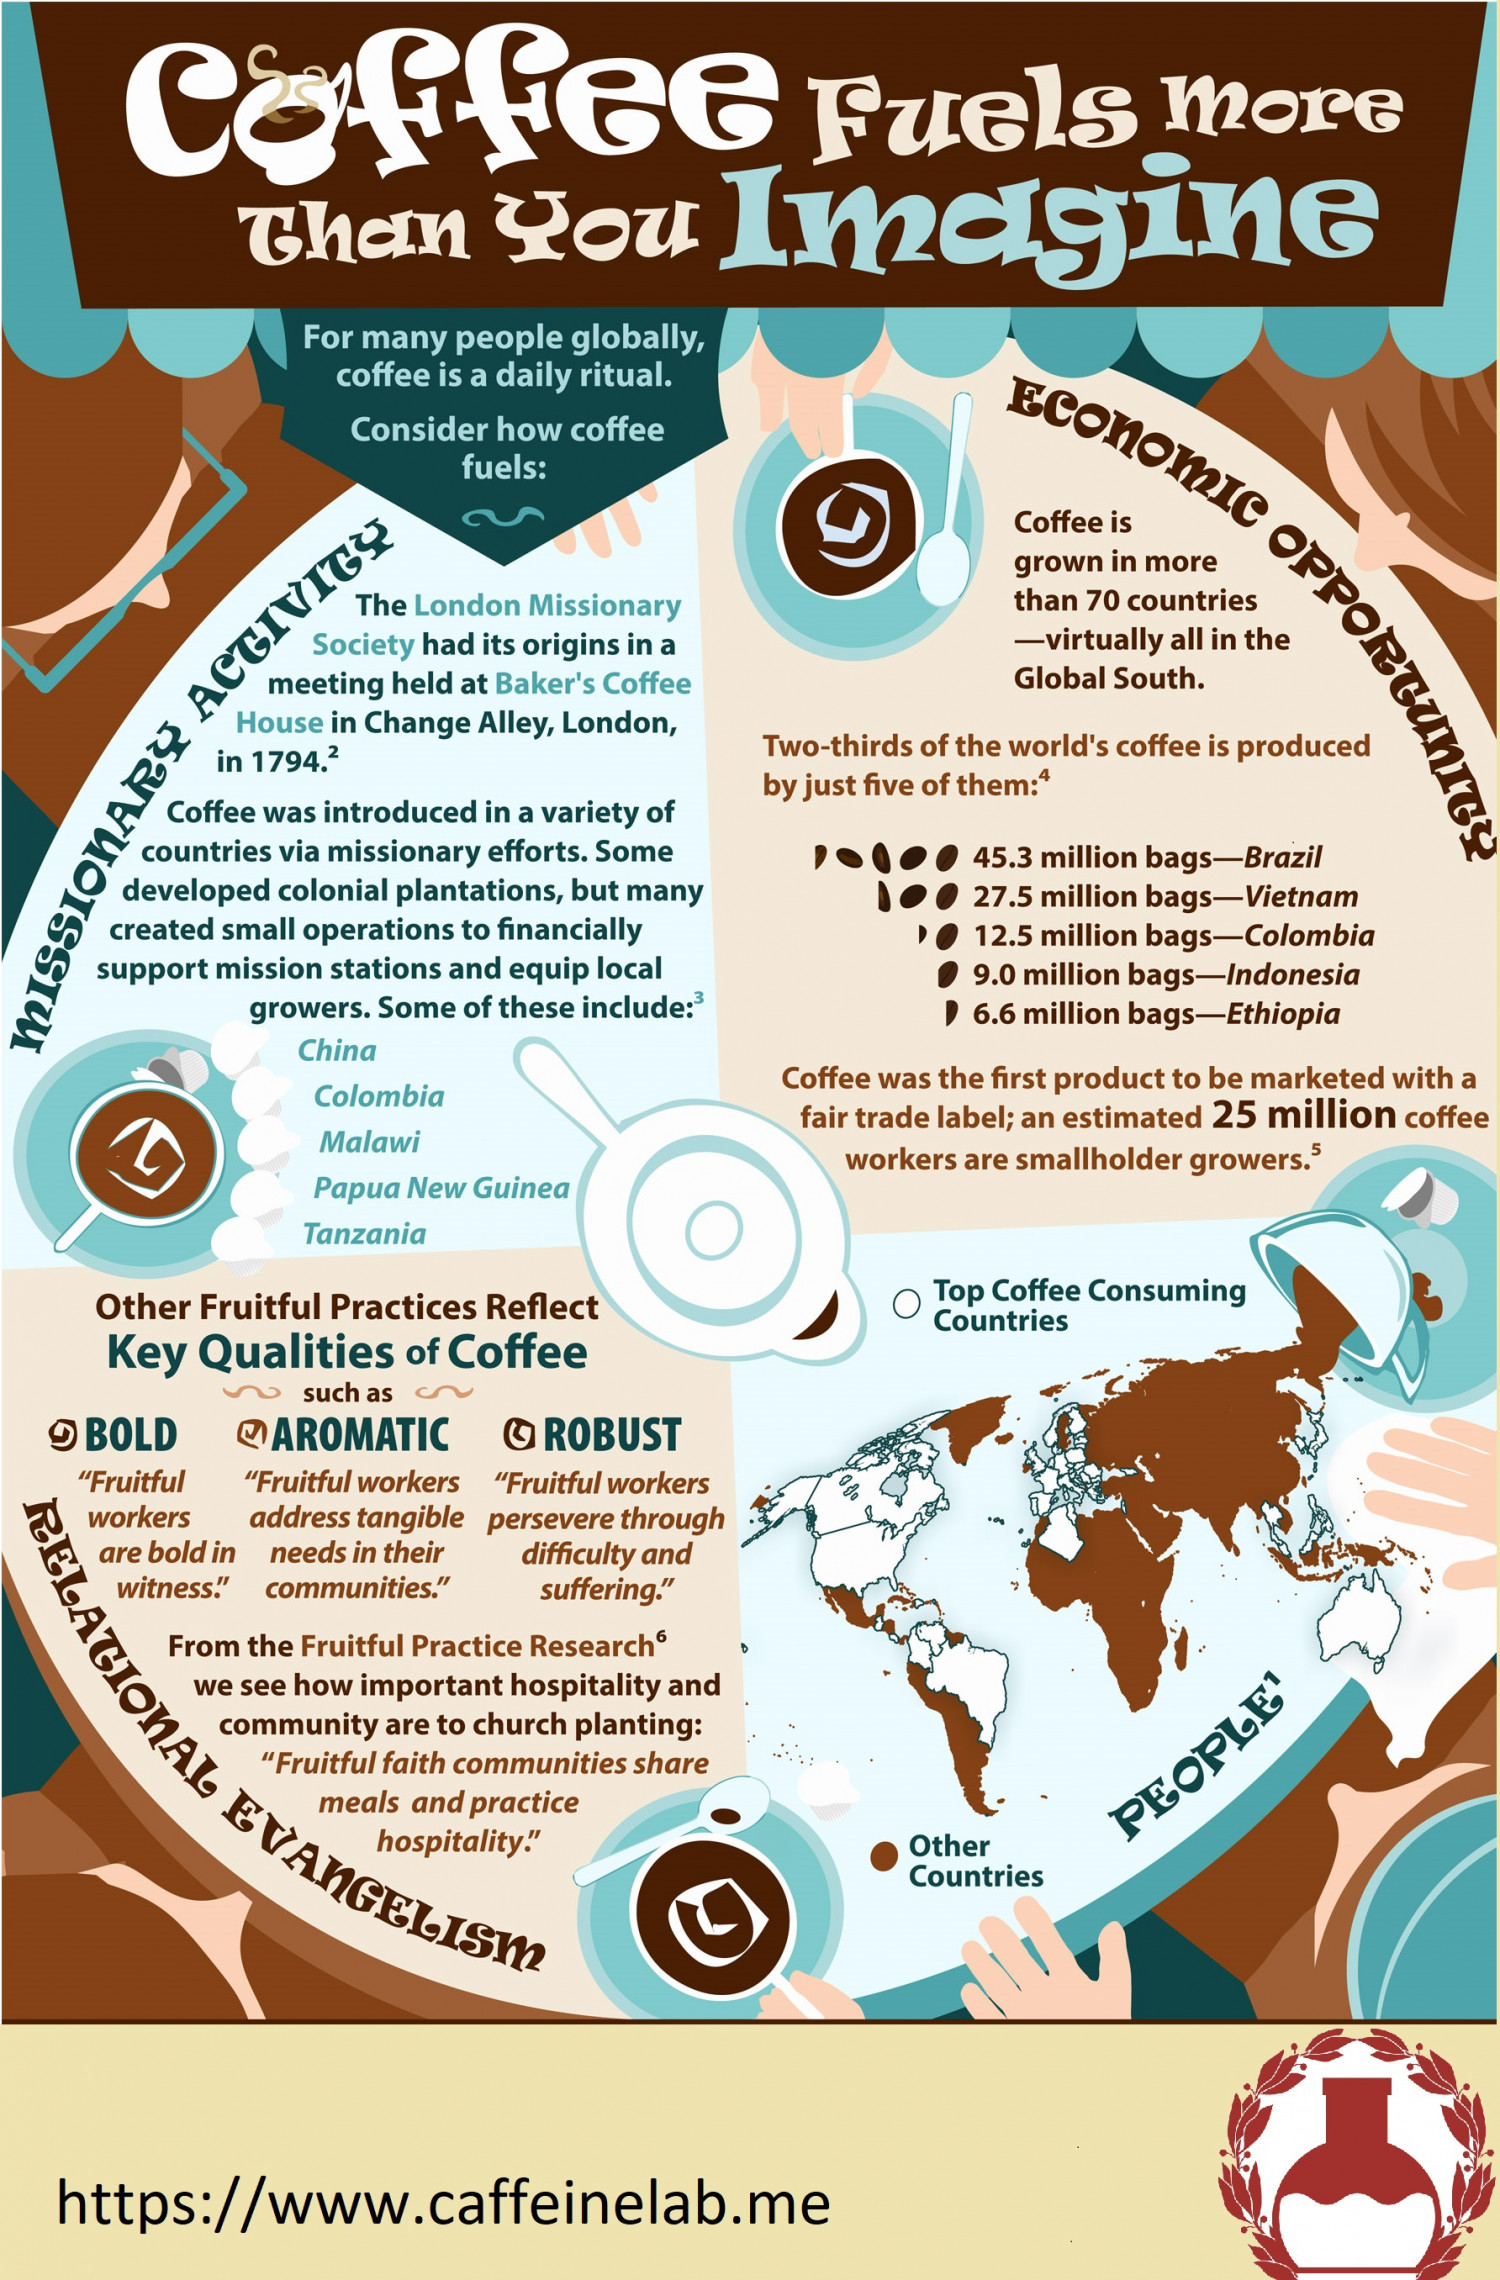 Few Facts Regarding Coffee From the World Infographic